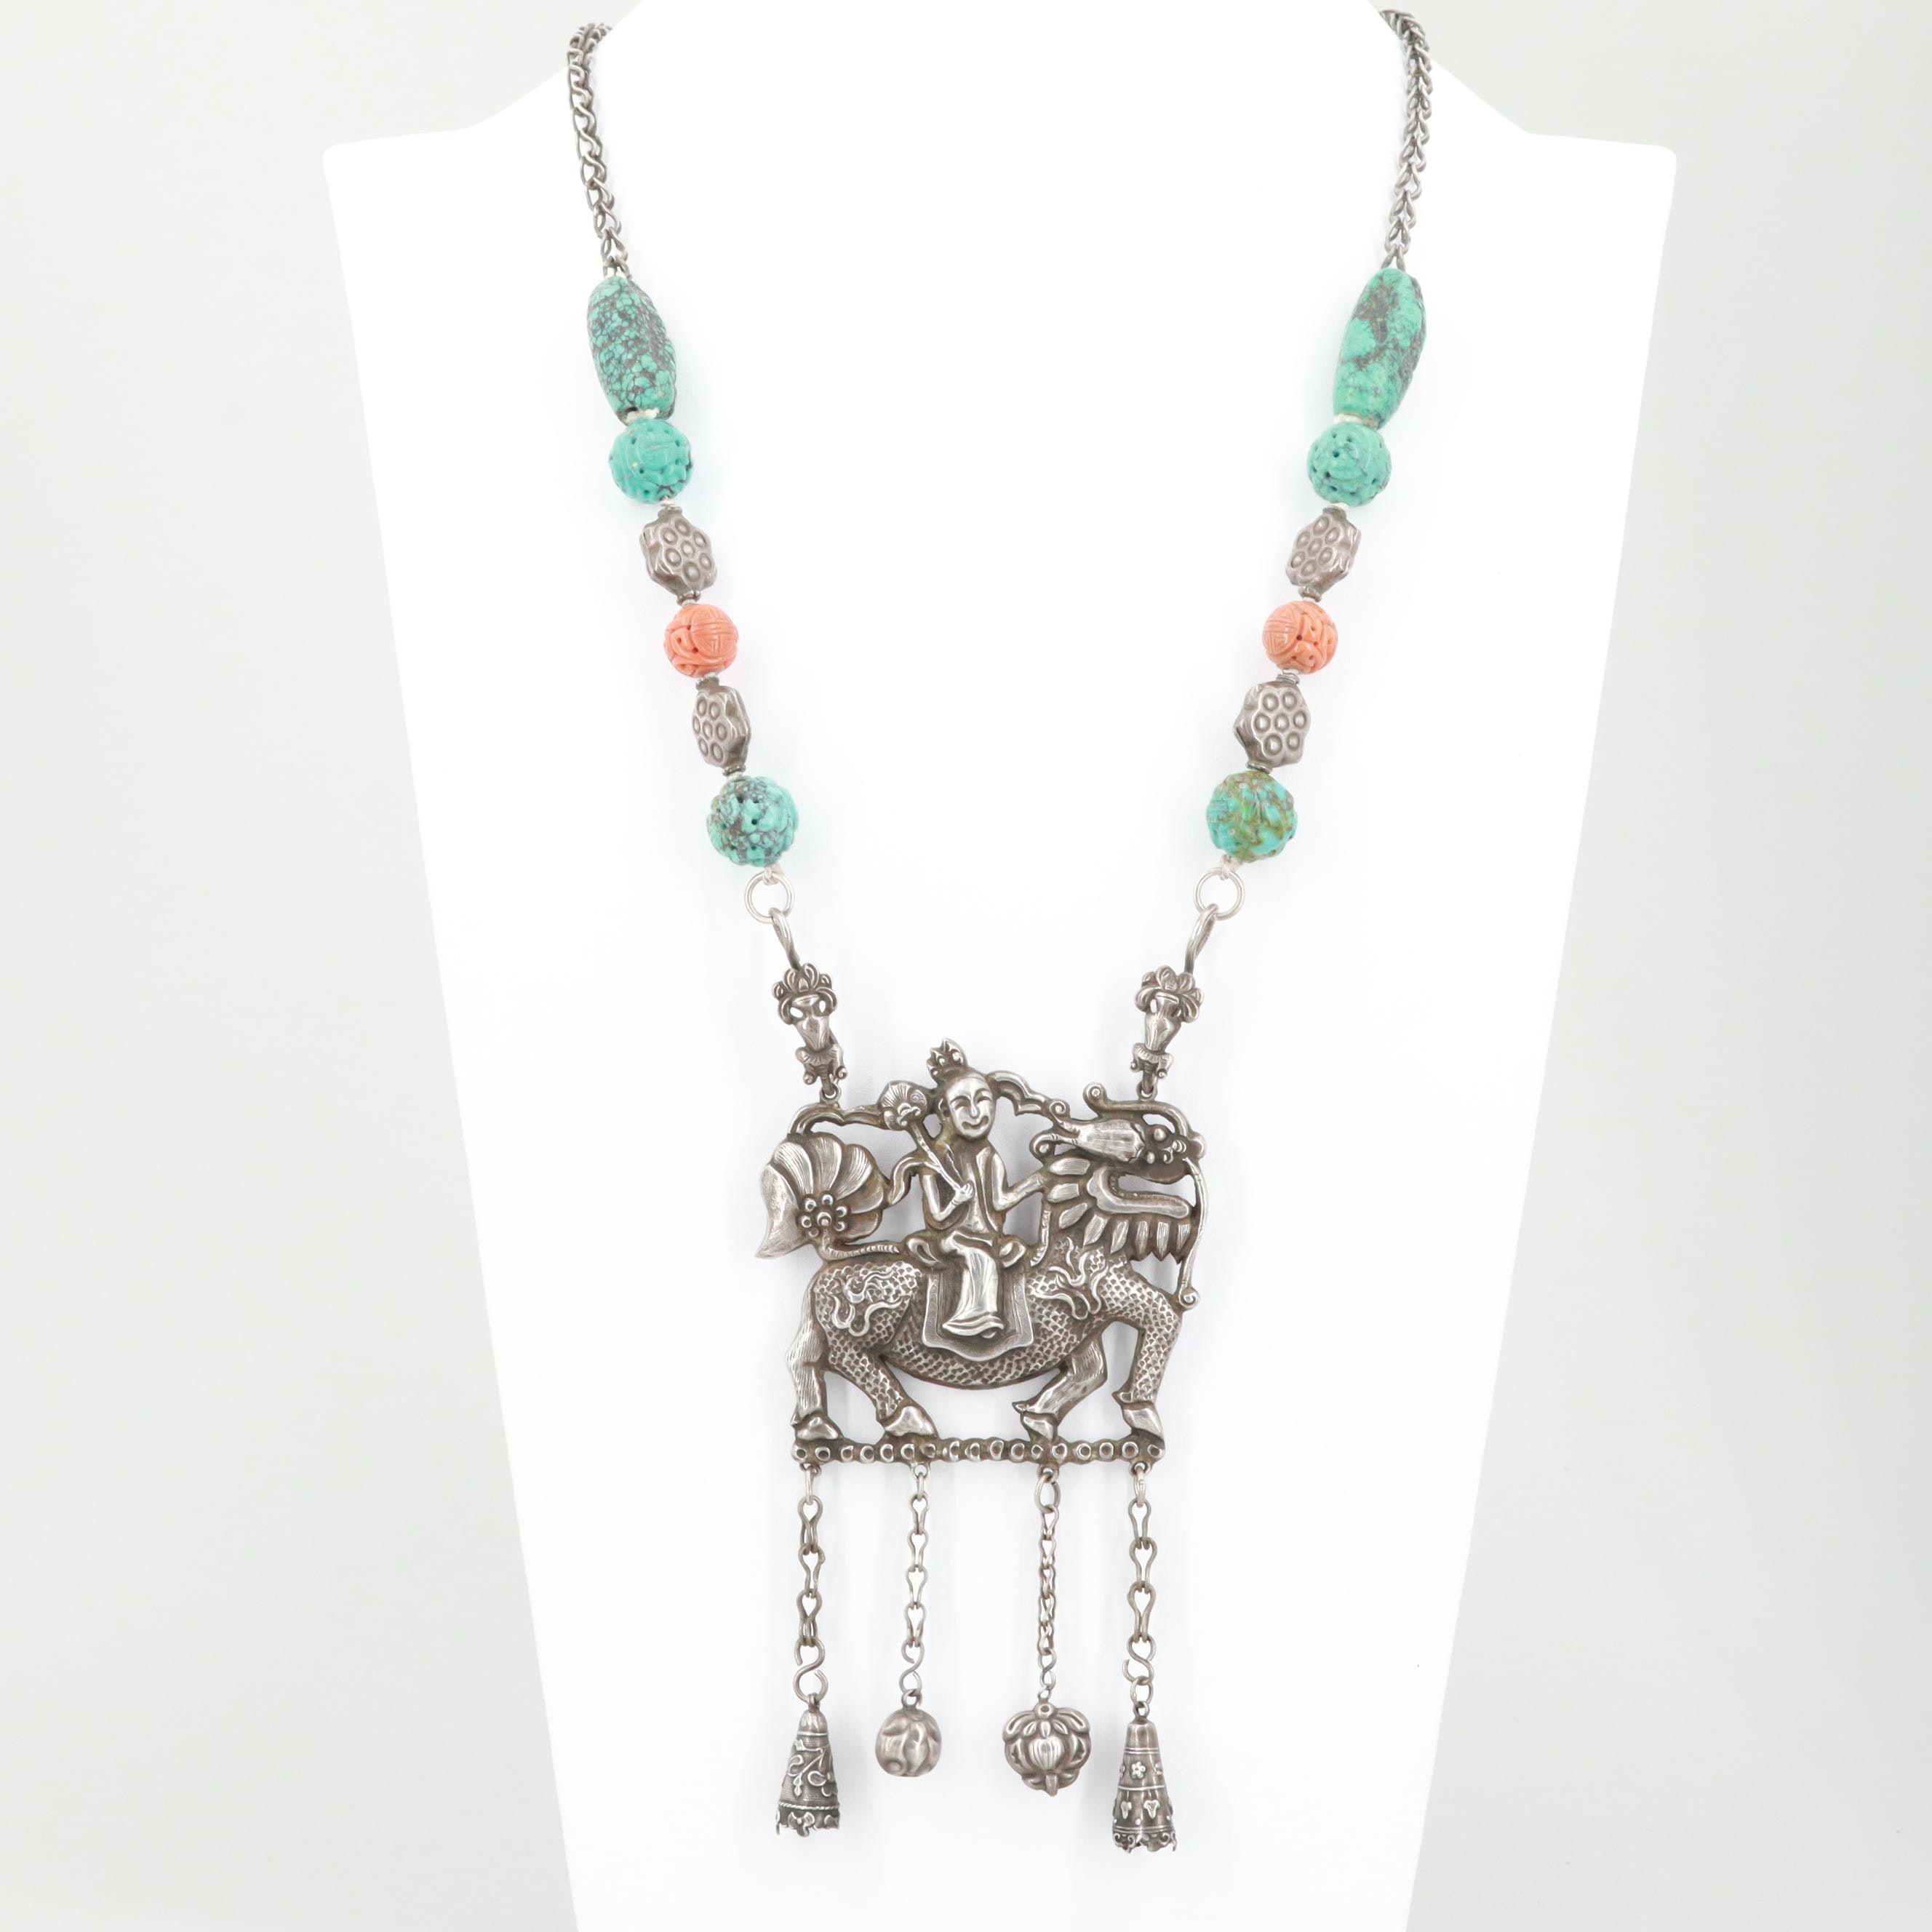 Chinese 800 Silver Turquoise and Coral Qilin Necklace, Late Qing Dynasty